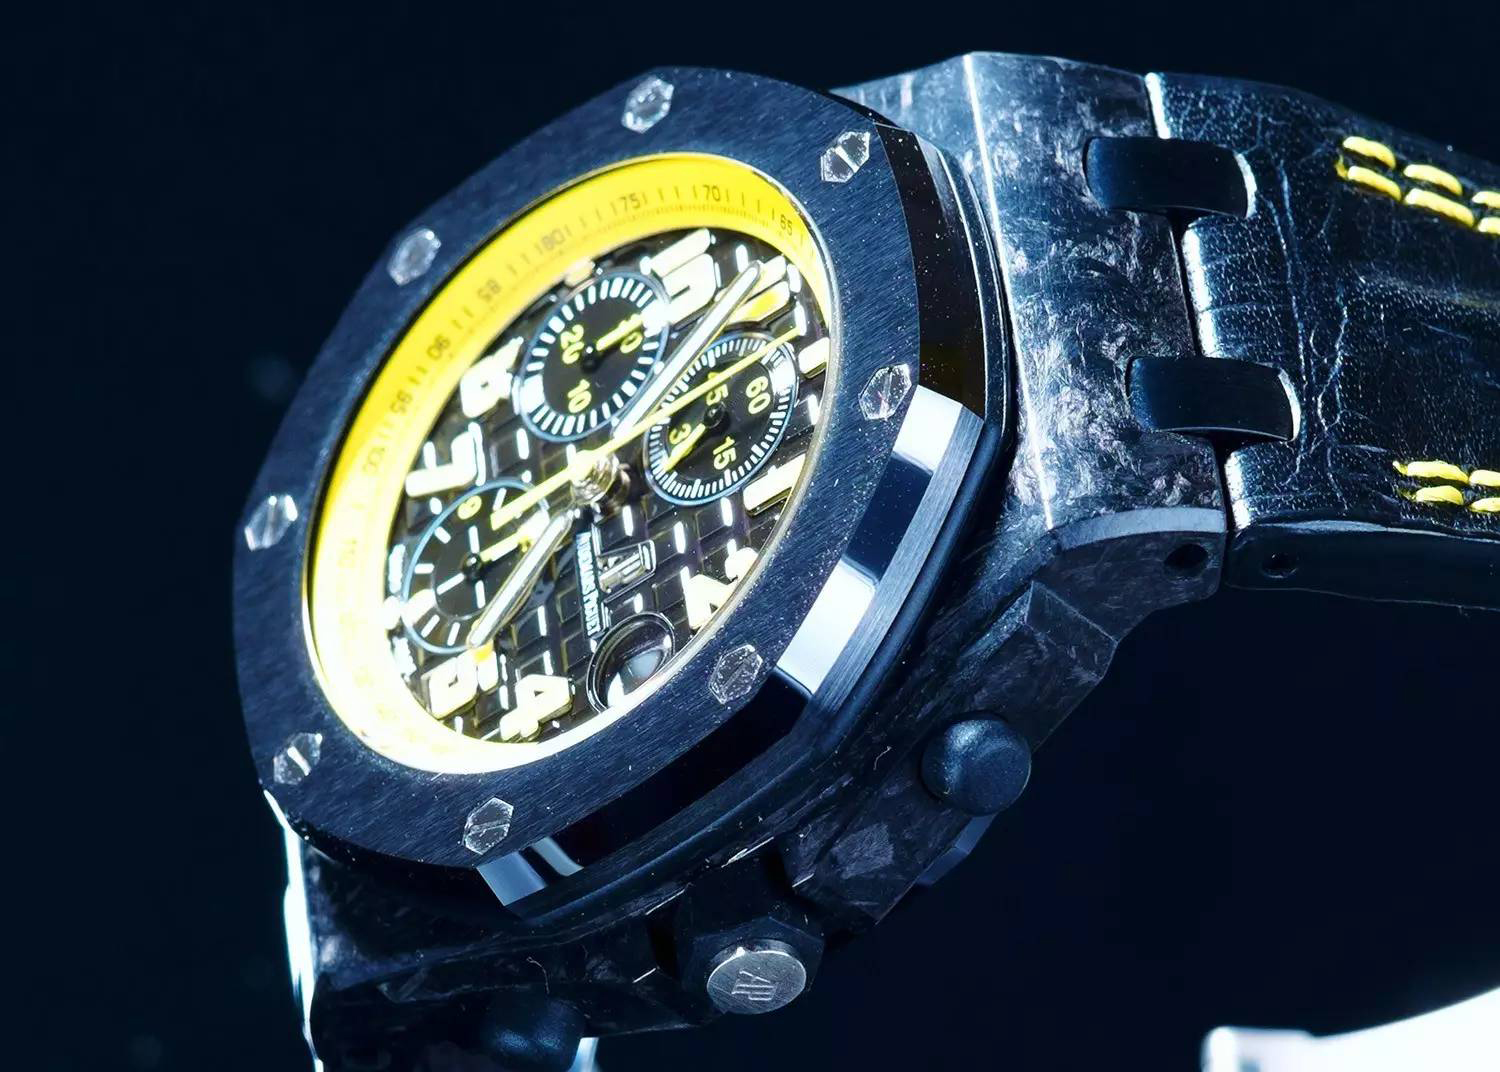 Audemars Piguet BumbleBee Forged Carbon Case